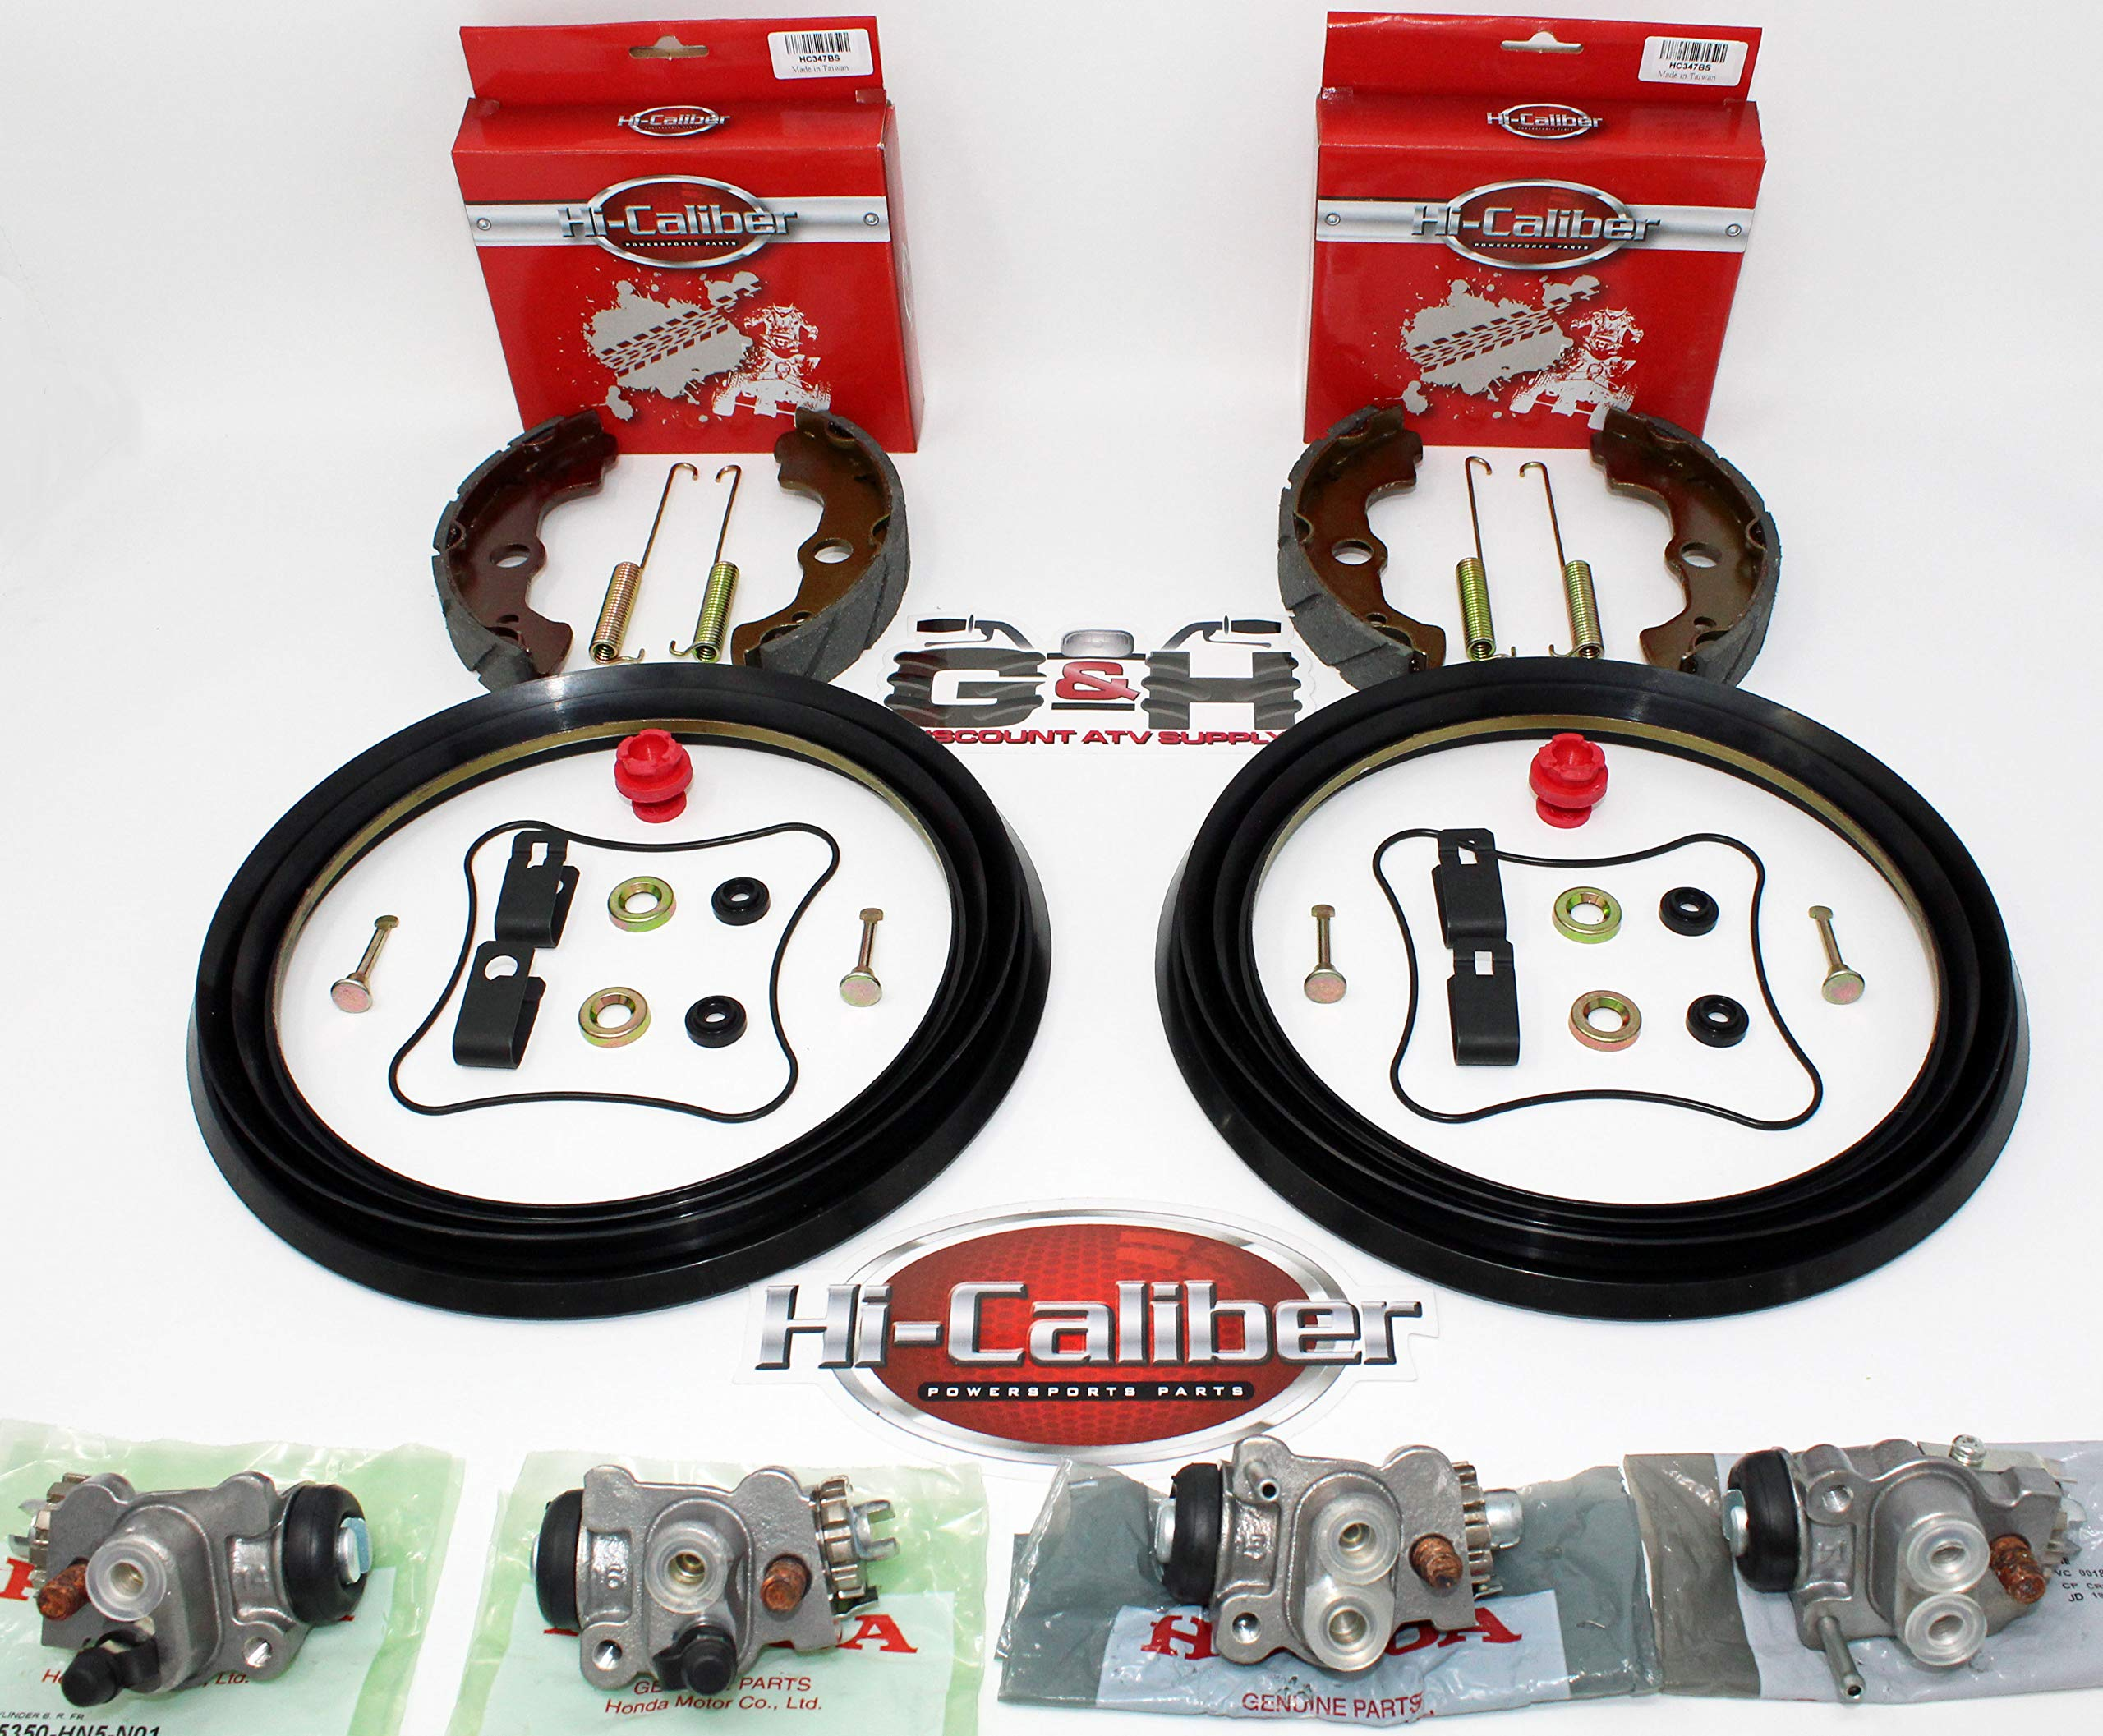 Complete FRONT Brake Rebuild KIT (Includes Shoes, Wheel Cylinders, Hardware) for 2004-2006 Honda 350 Rancher by Hi-Caliber Powersports Parts, OEH, Armor Tech (Image #1)